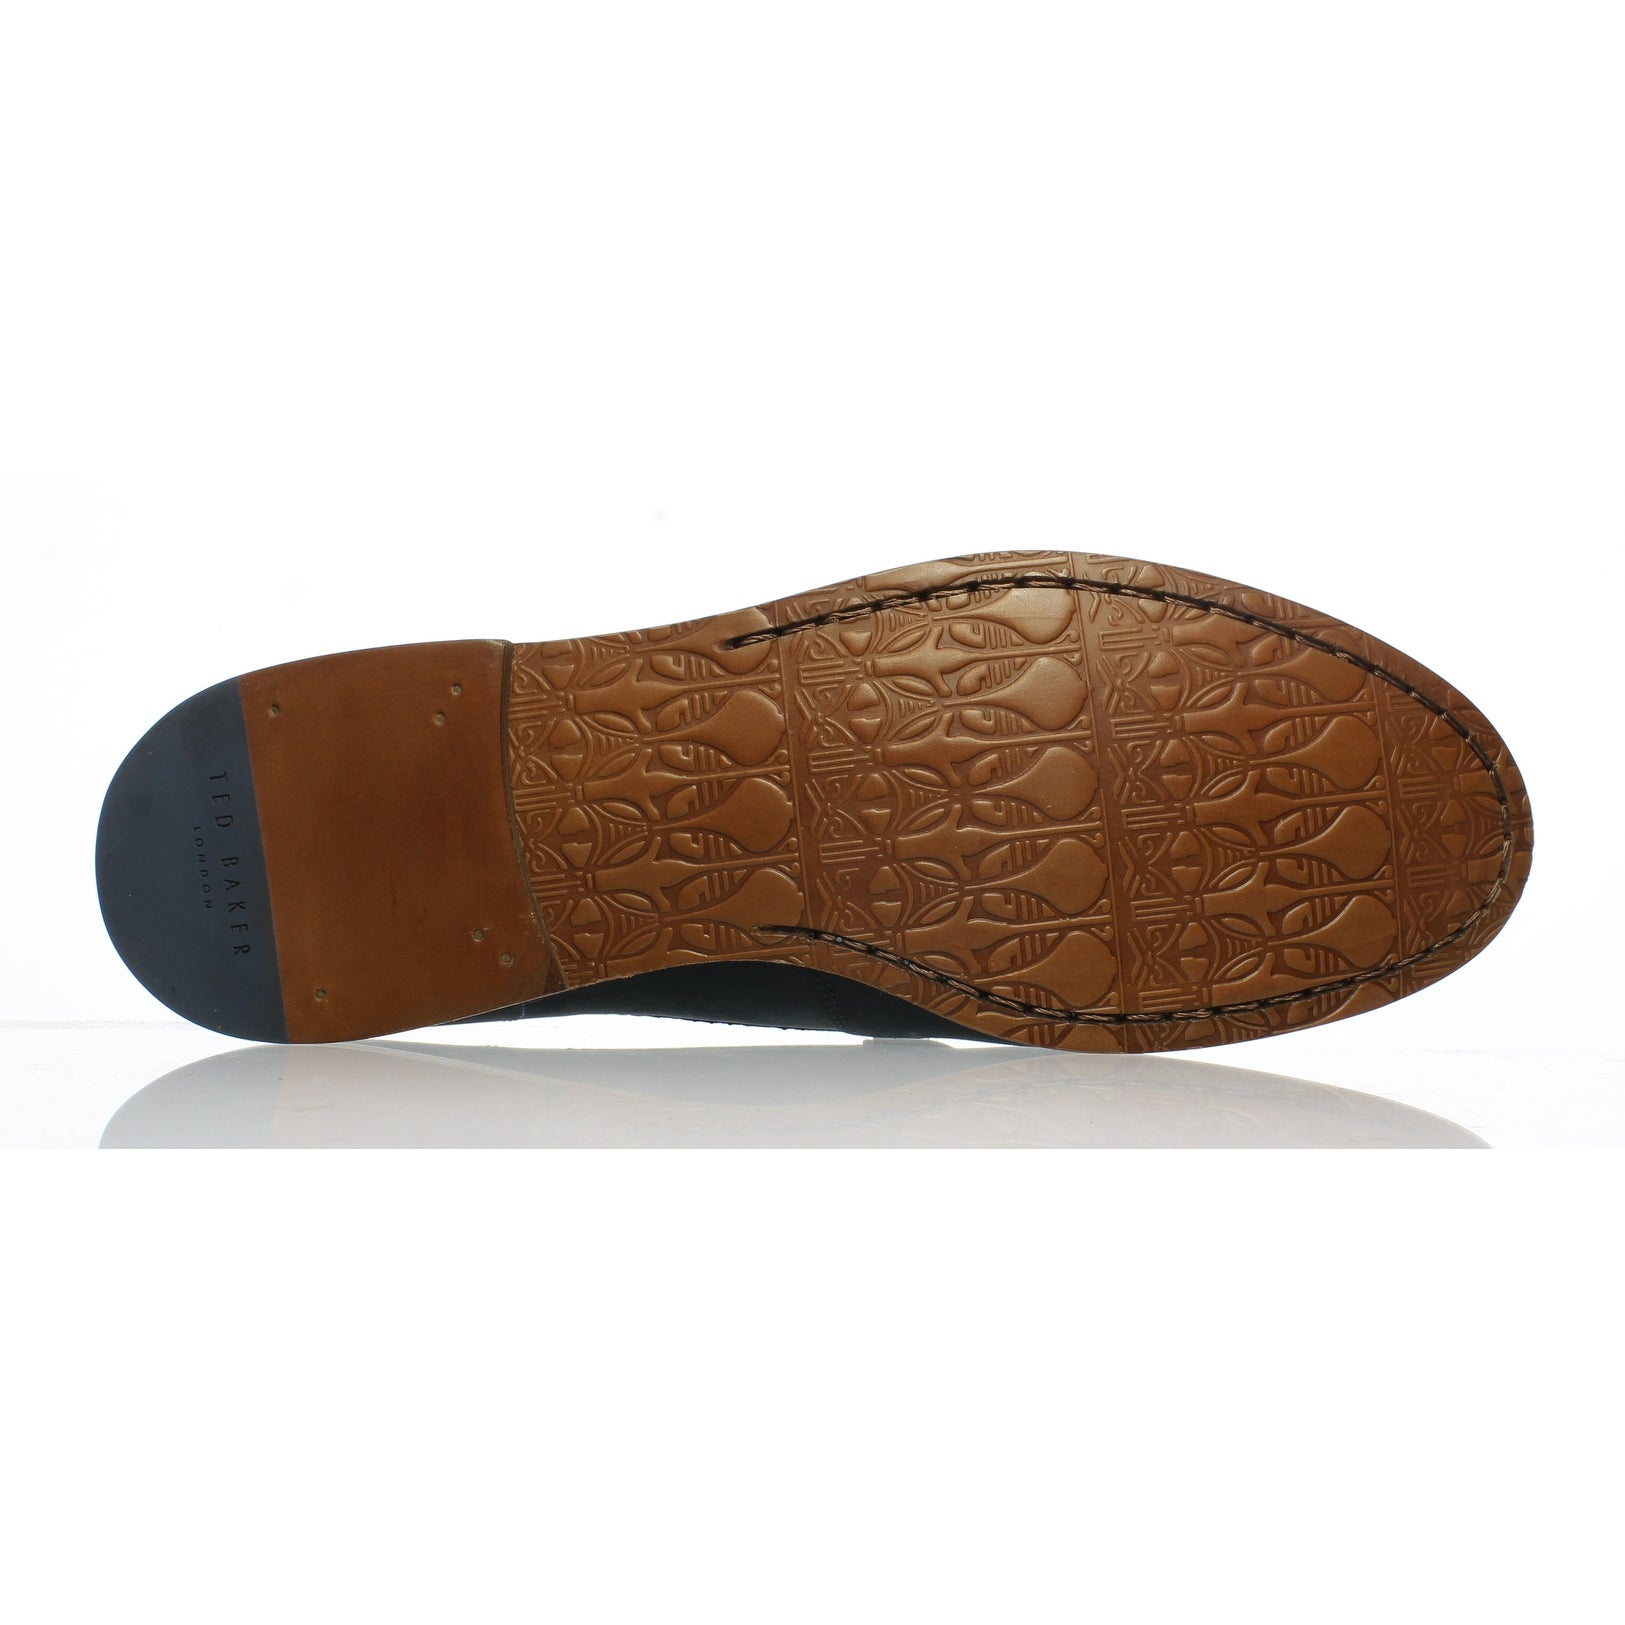 df7f5807f5181 Shop Ted Baker Mens 916309 Dark Blue Loafers Size 10 - Free Shipping Today  - Overstock.com - 25585958